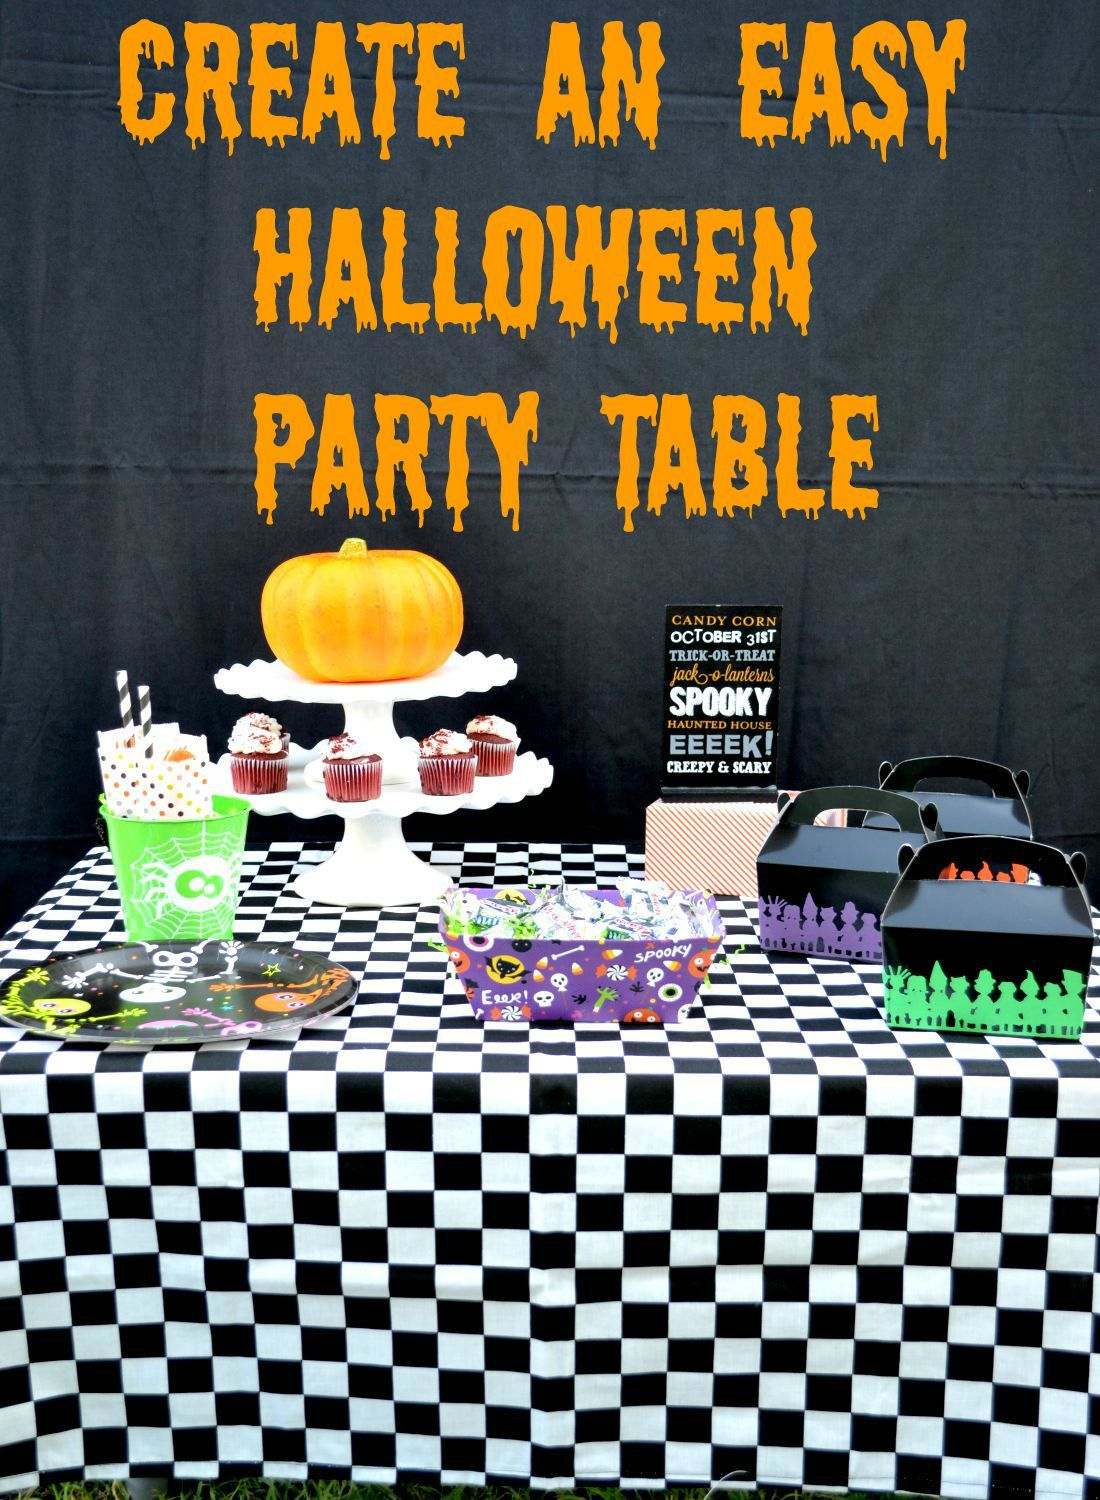 How To Create An Easy Halloween Party Table | Halloween party ...